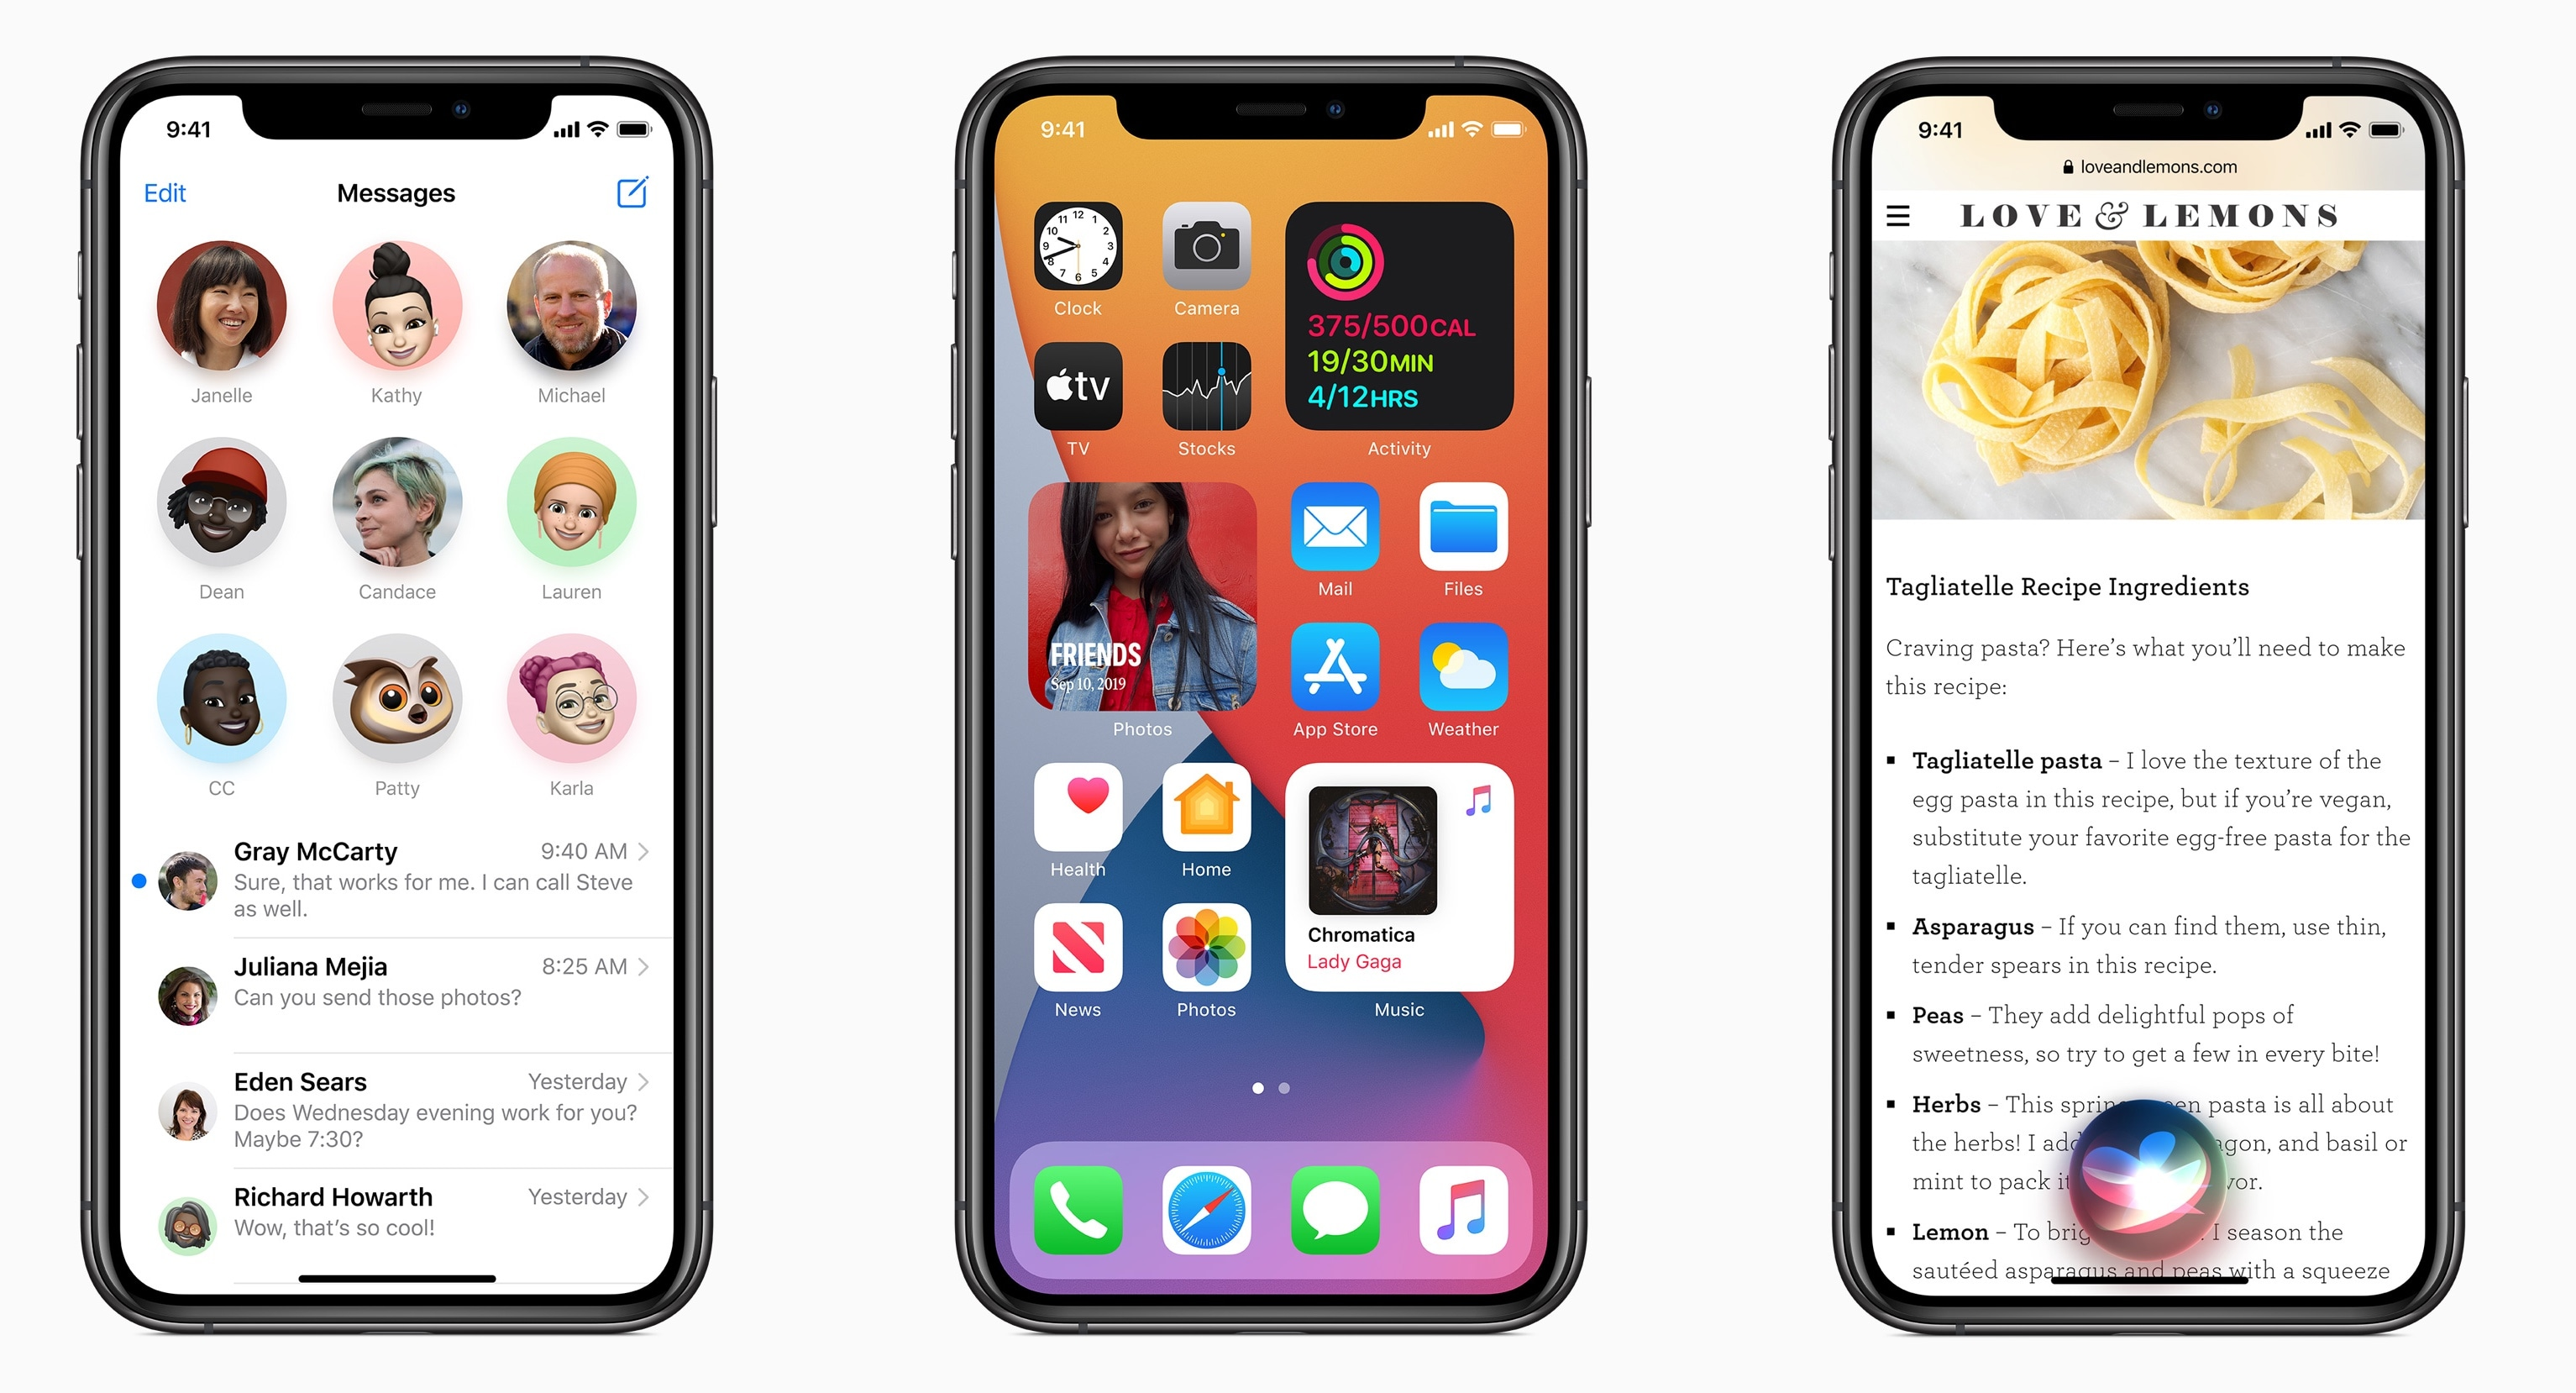 Ios 14 Finally Adds Widgets To The Iphone Home Screen Engadget